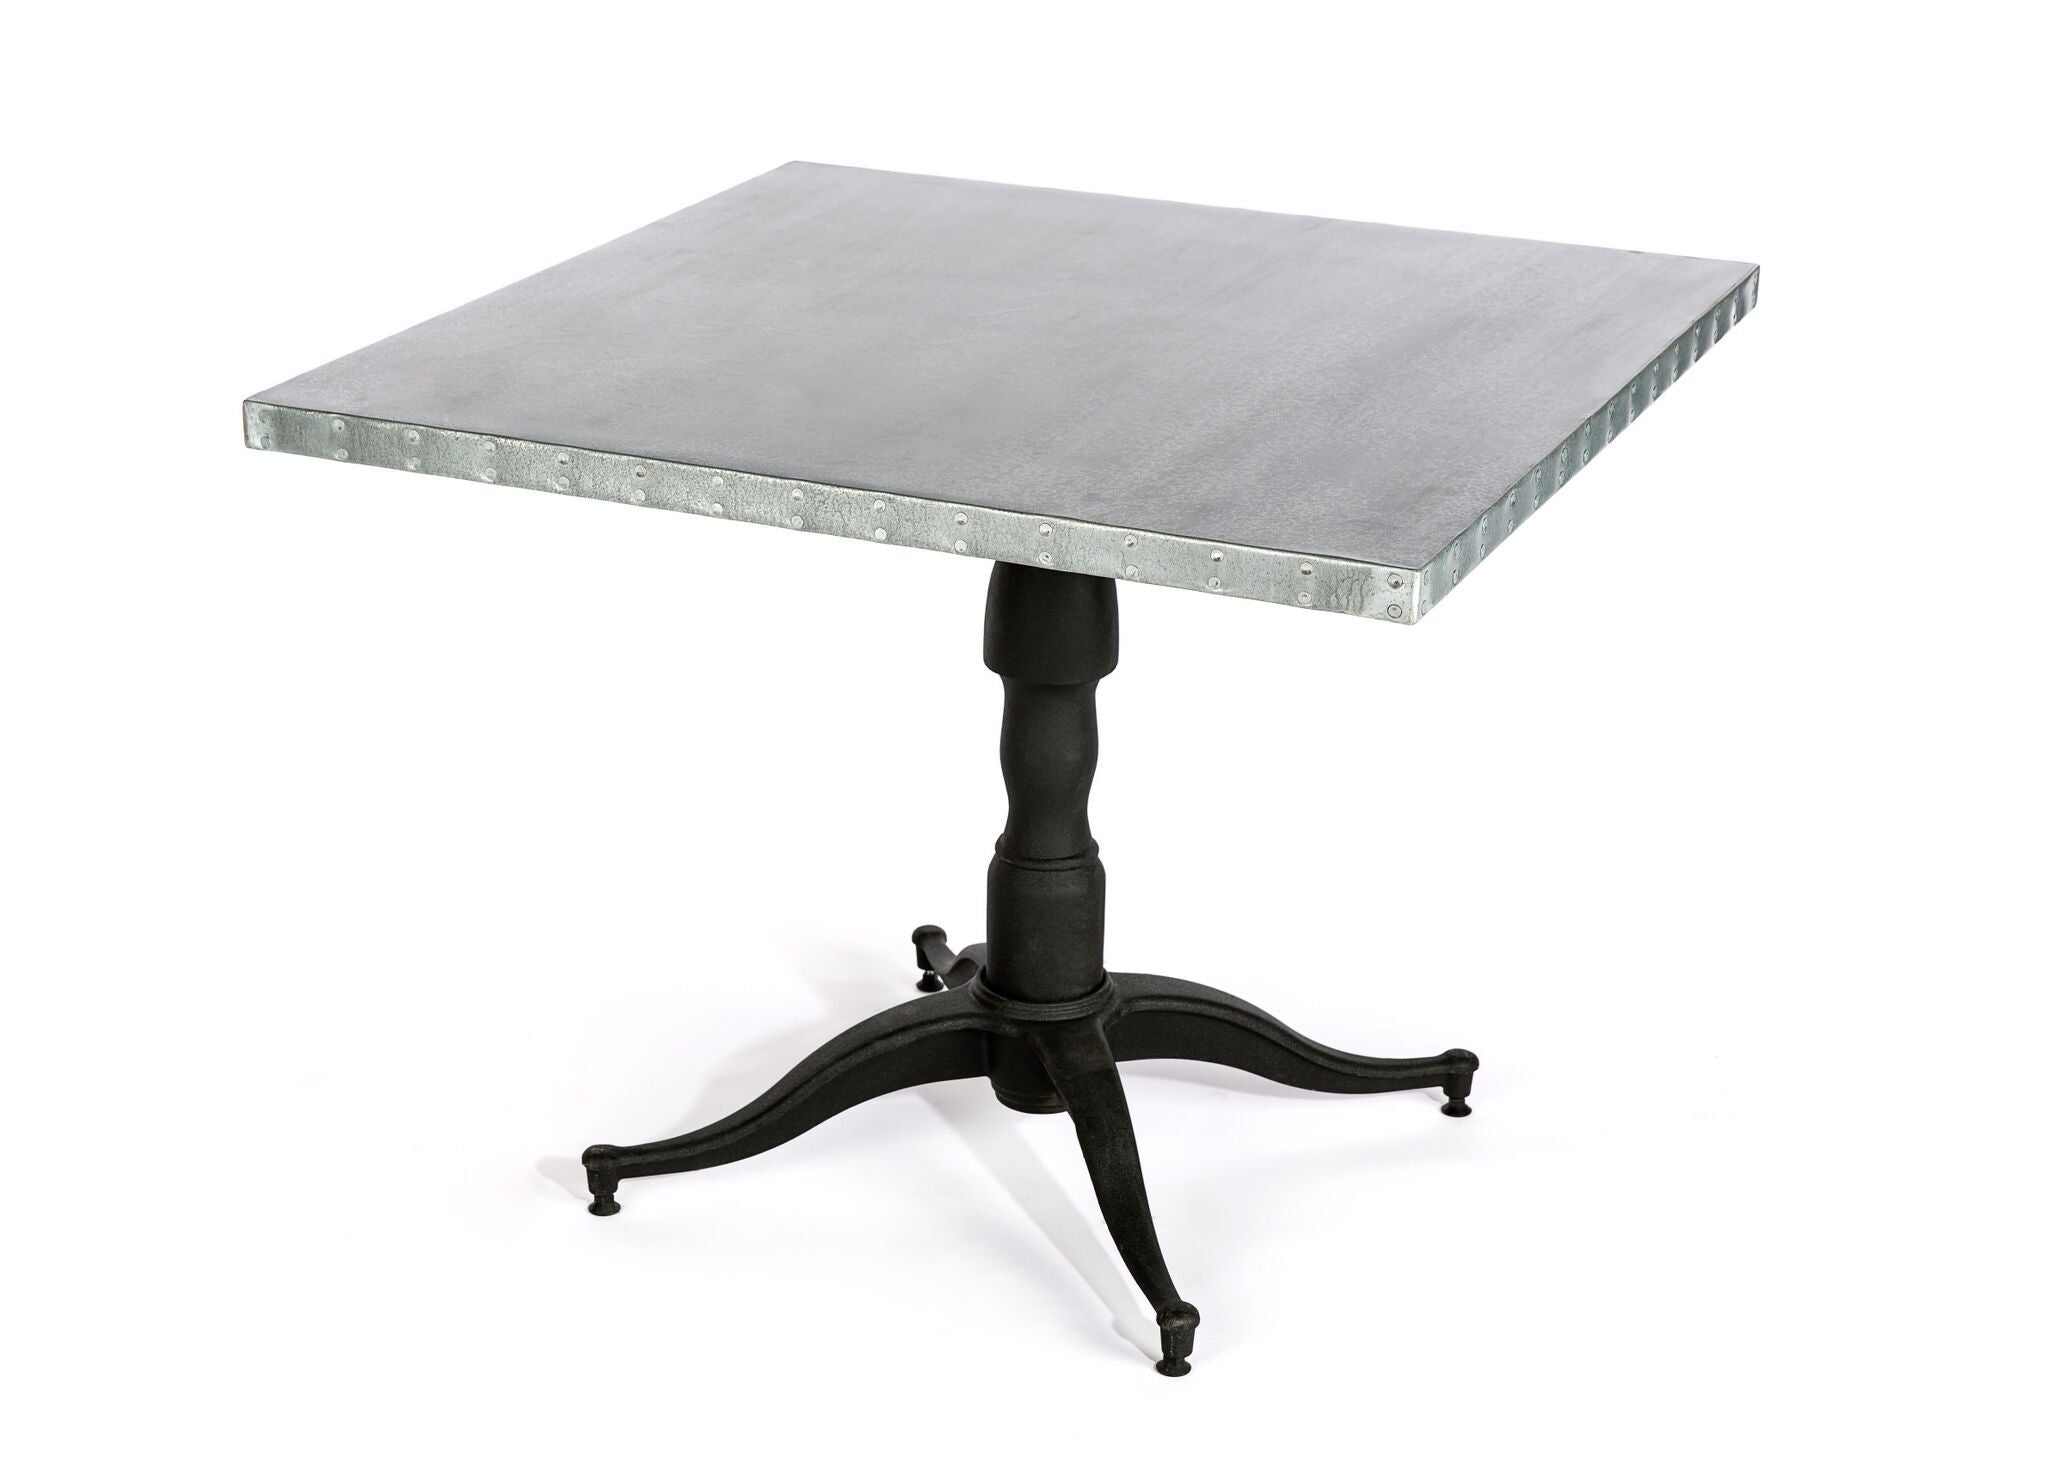 "Zinc Square Tables | Santa Fe | CLASSIC | Natural Reclaimed Oak | CUSTOM SIZE L 55 W 30 H 30 | 1.5"" Standard"